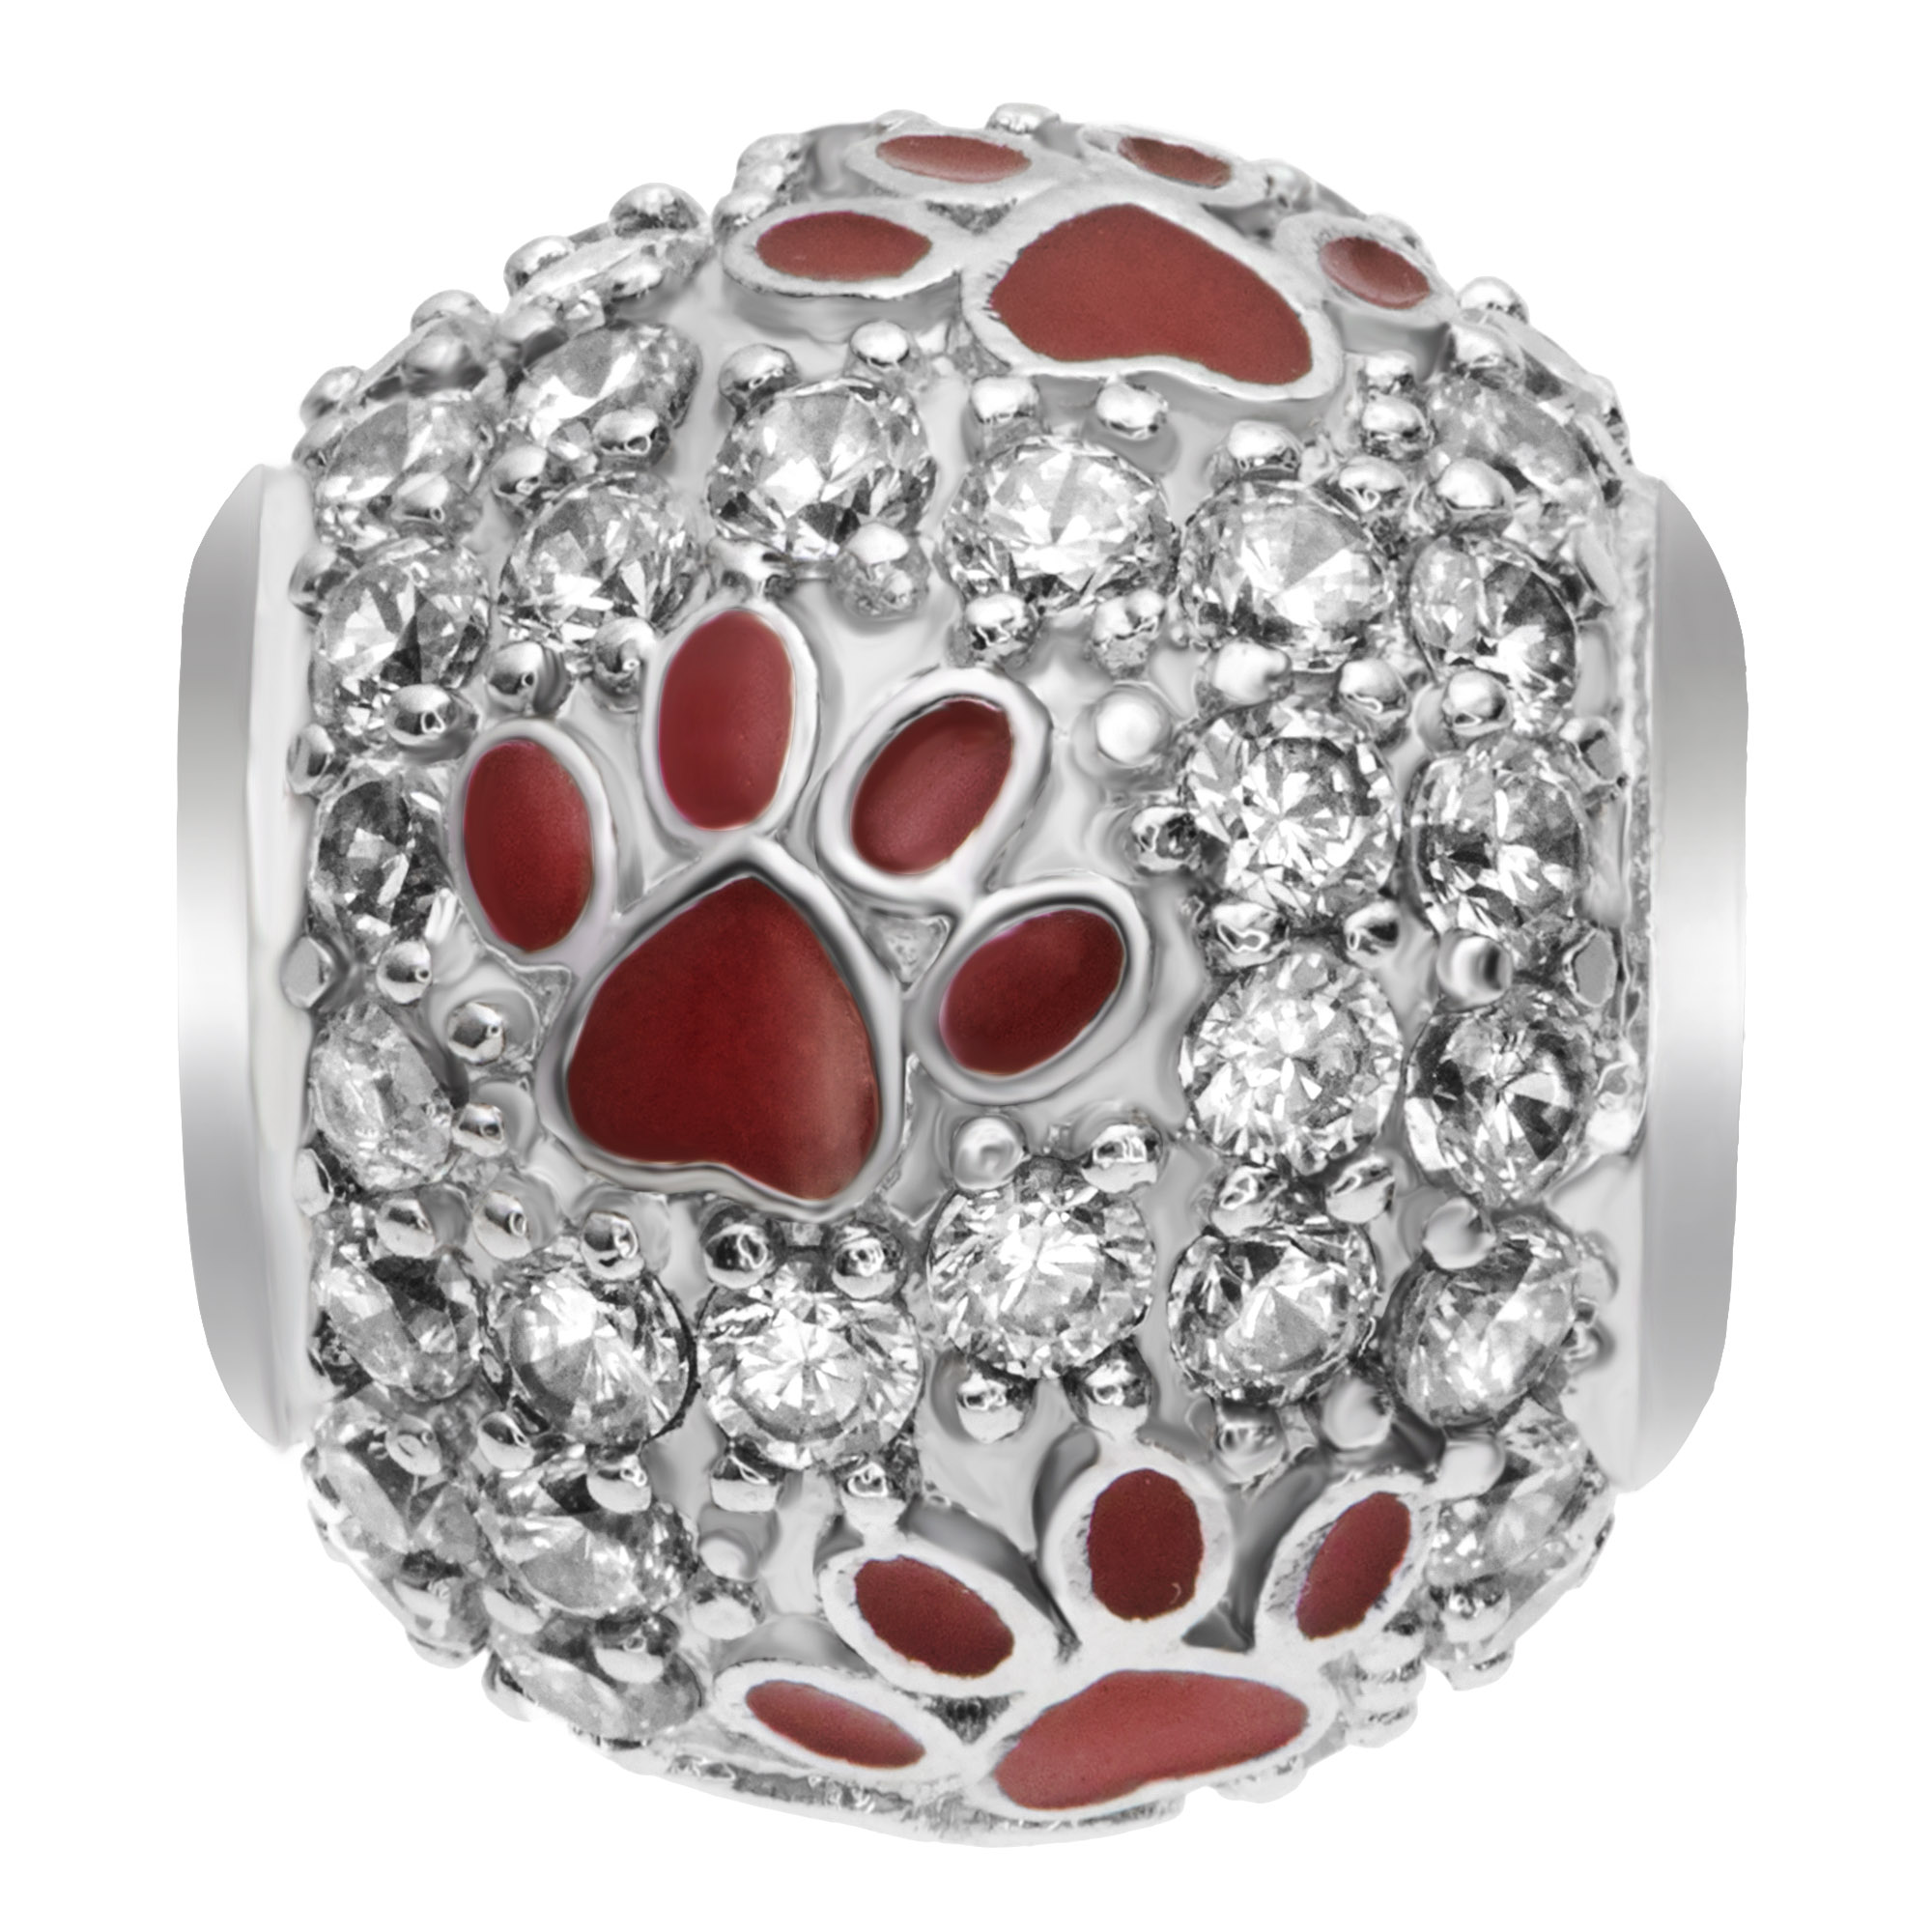 Rhodium on 925 Sterling Silver Red Enamel Puppy Dog Paw Footprint Bead for European Charm Bracelet Made with Swarovski Elements Crystals